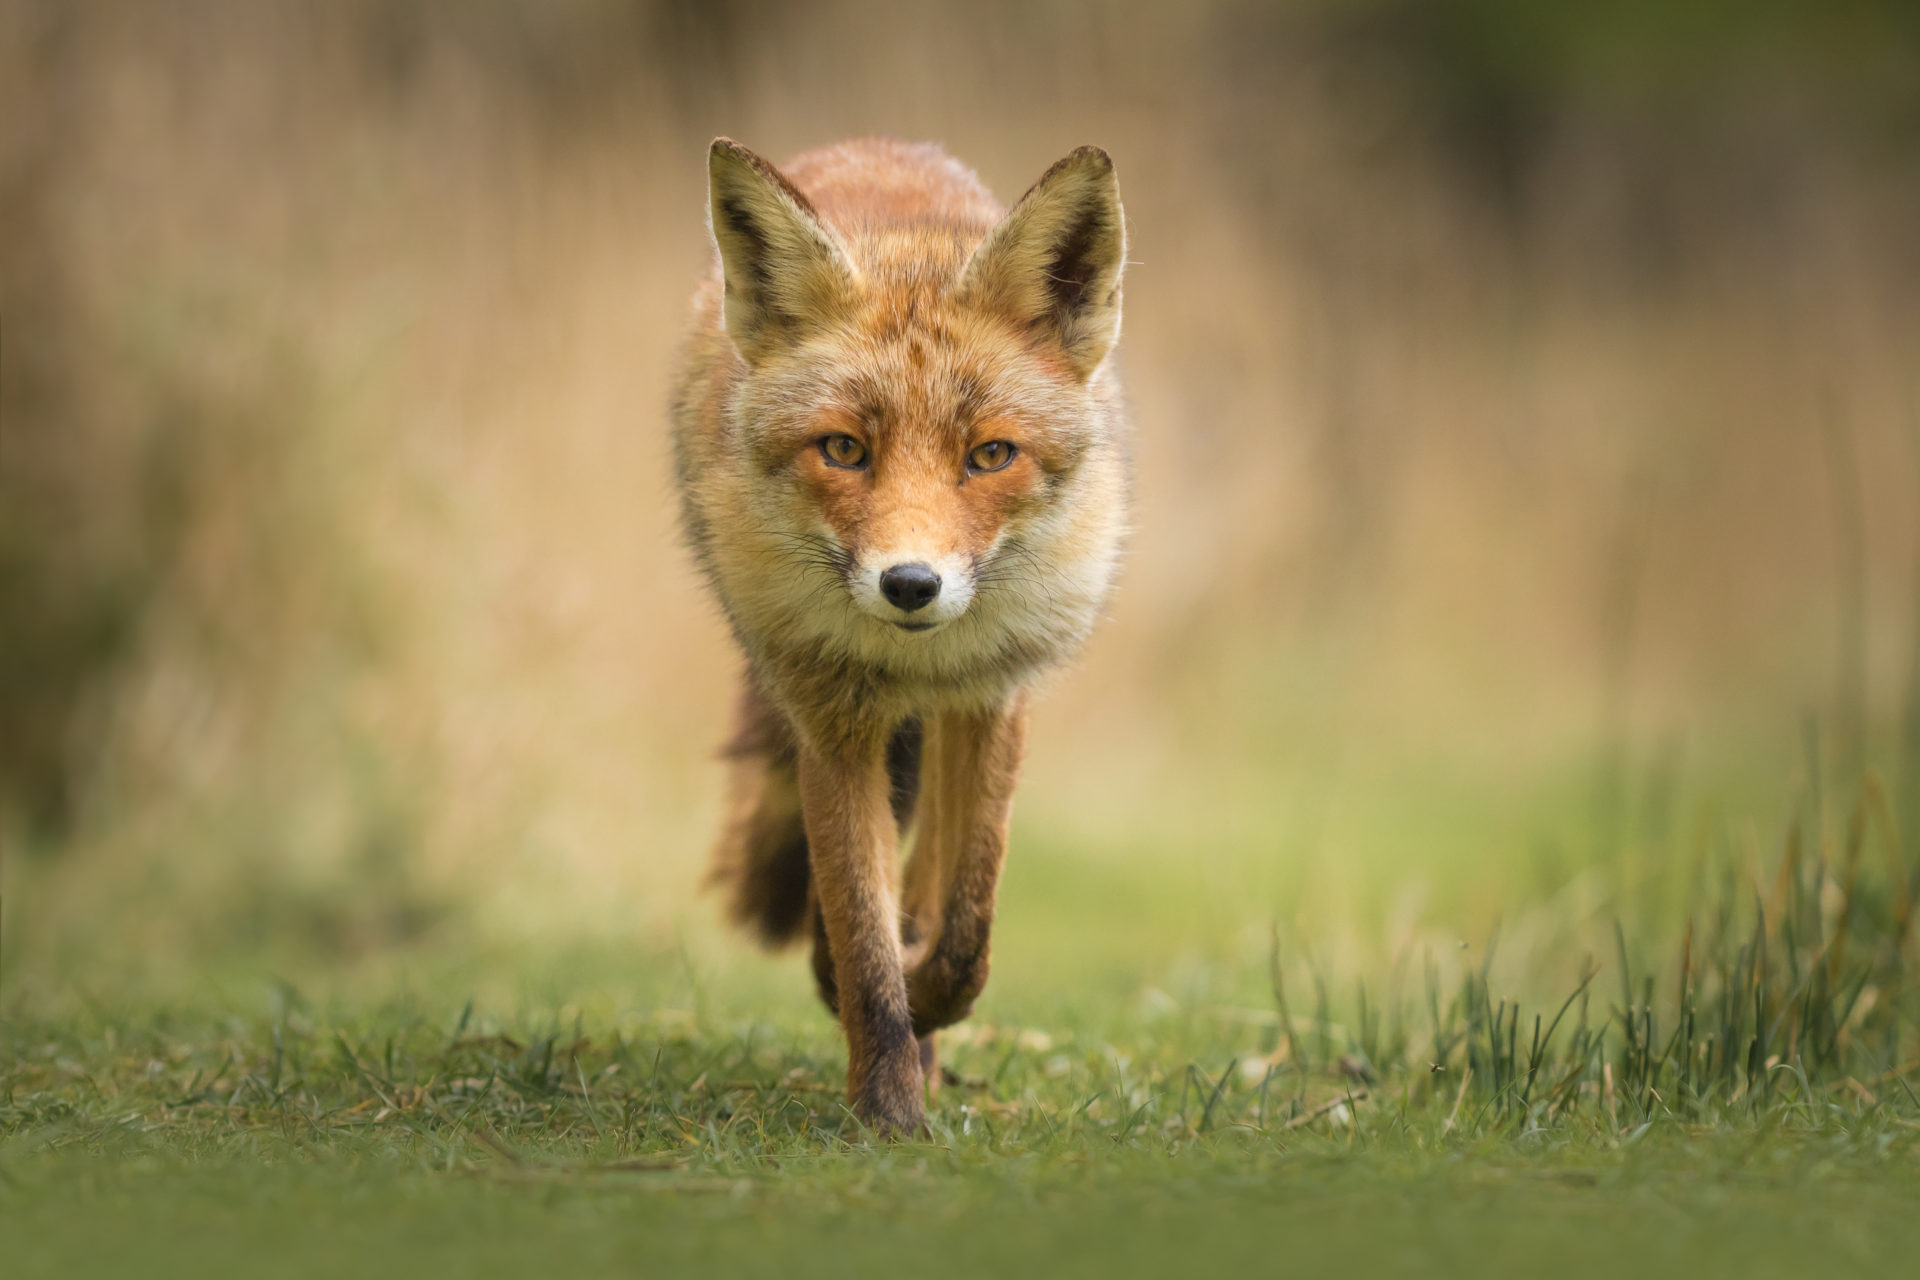 Wild young red fox (vulpes vulpes) vixen scavenging in a forest